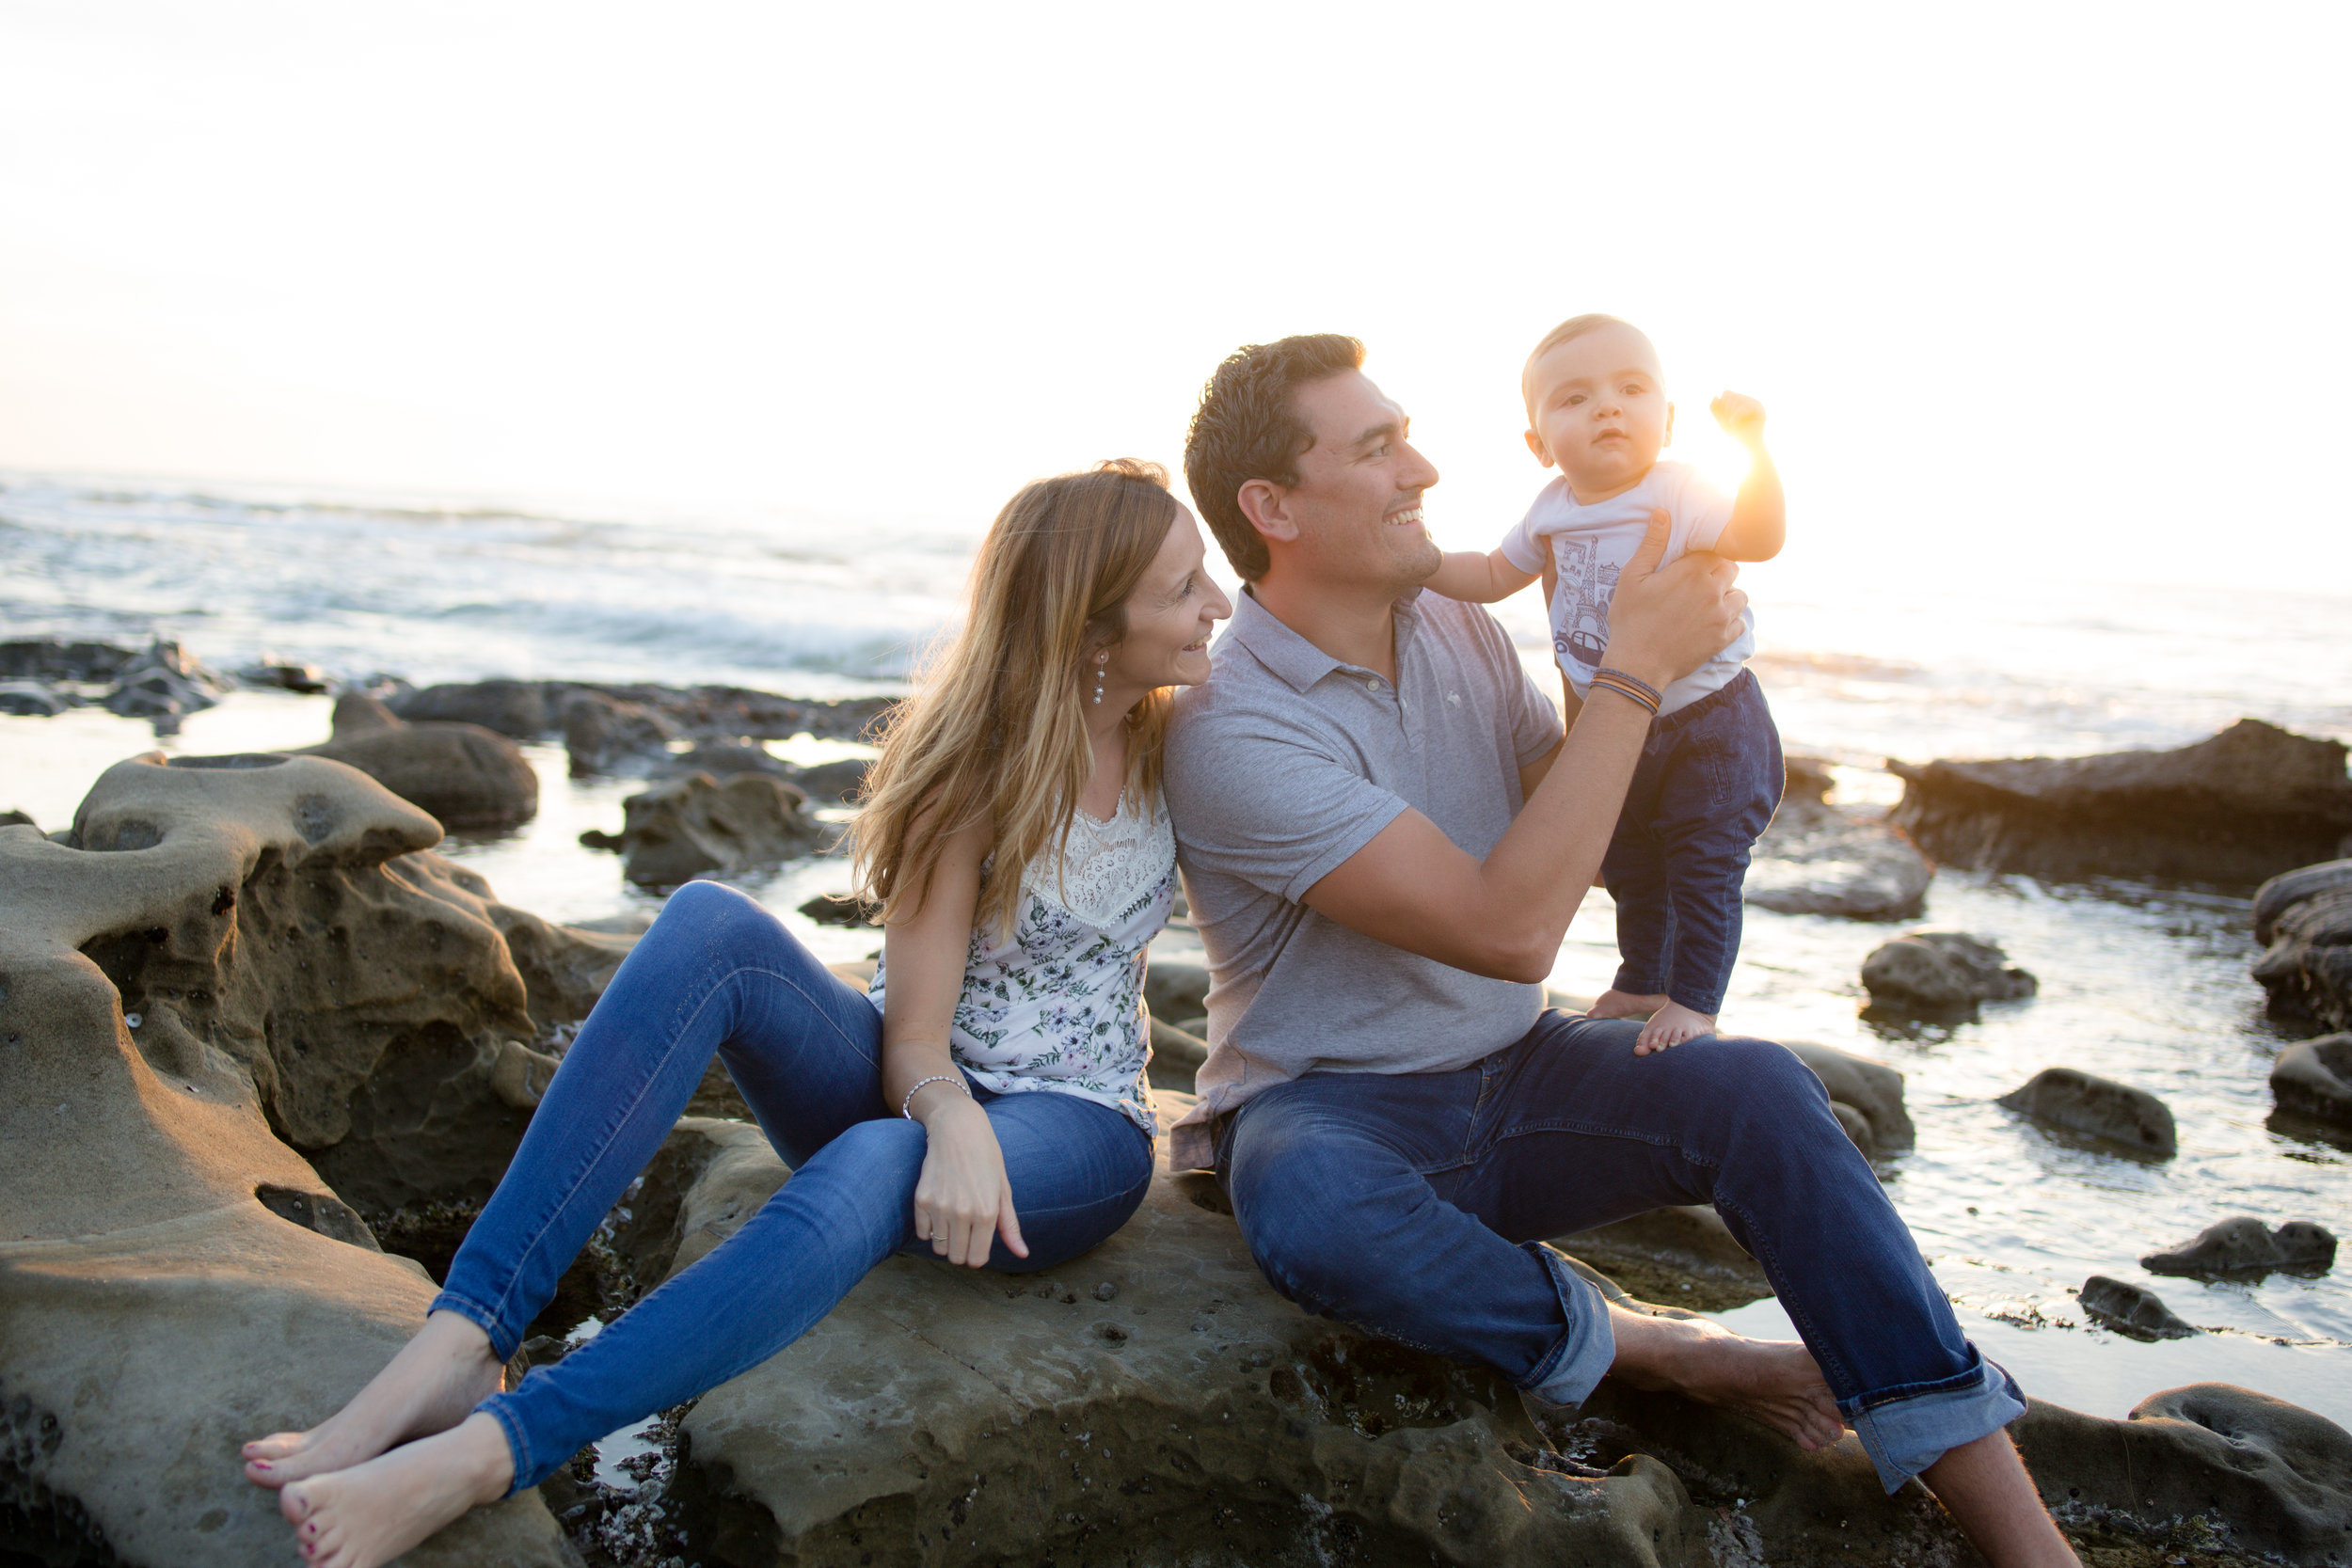 La Jolla Tide Pools - This is my favorite spot to go with families. There are a variety of great spots to go to, including the classic La Jolla Cove backdrop. The water here is calm, bright and blue, a perfect spot if you're interested in having a dip in the ocean at the end of the session.